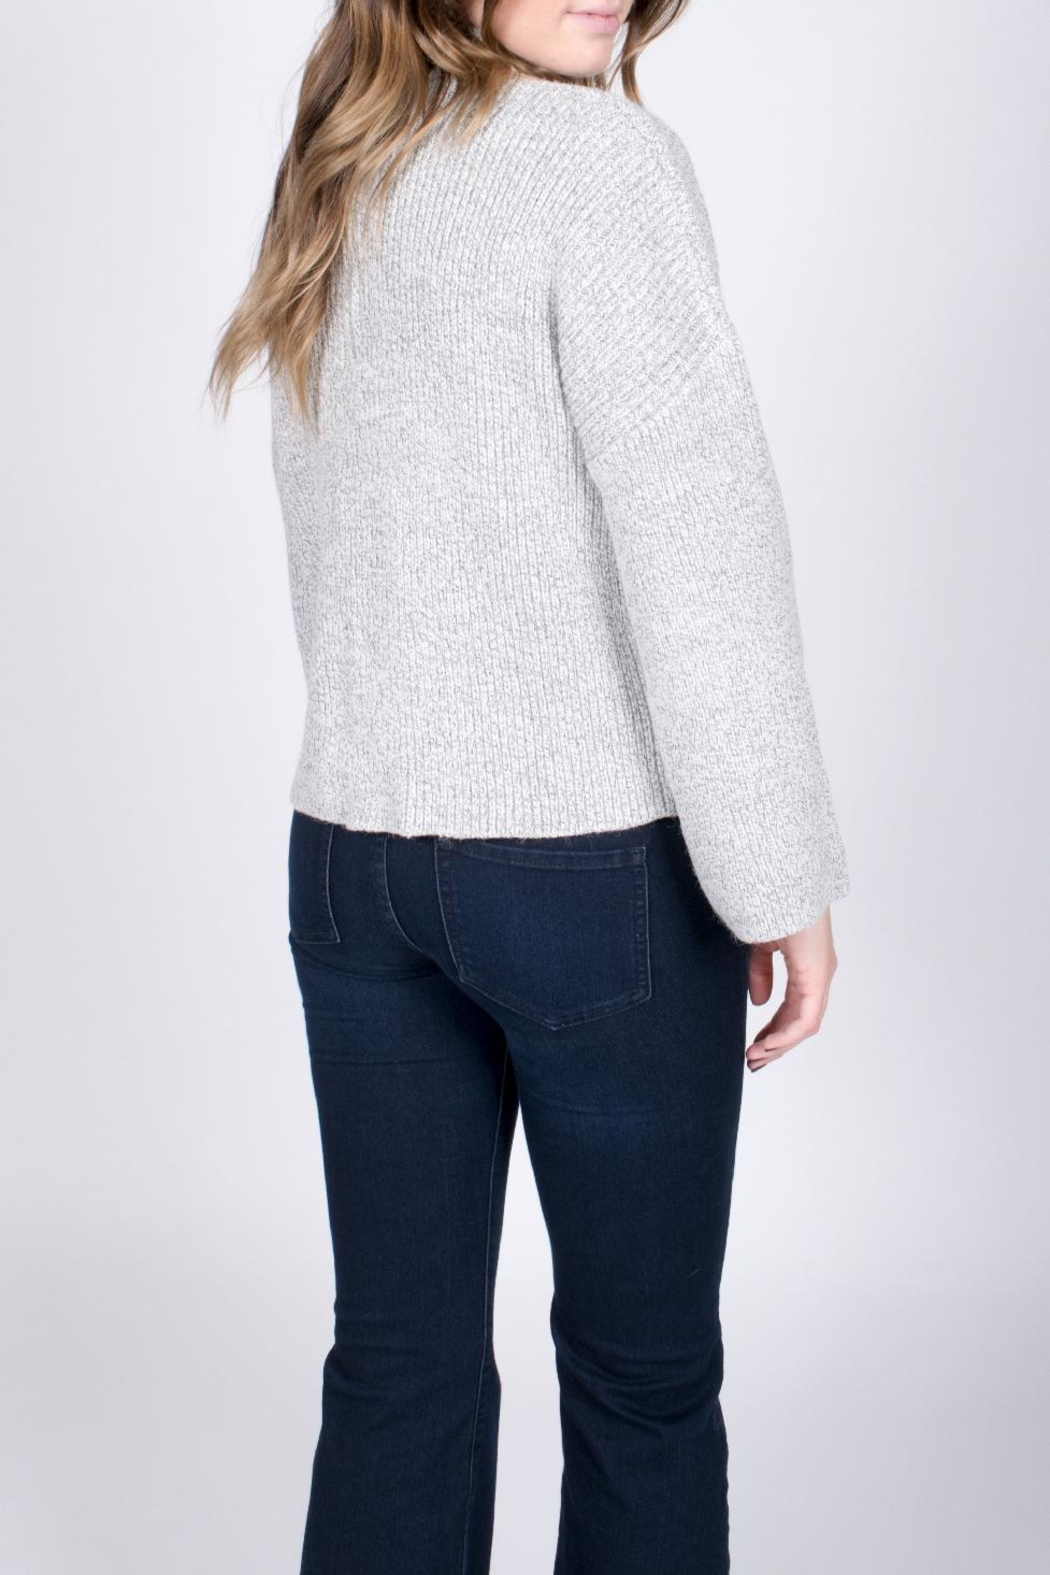 Do & Be Bell Sleeve Choker Sweater - Back Cropped Image